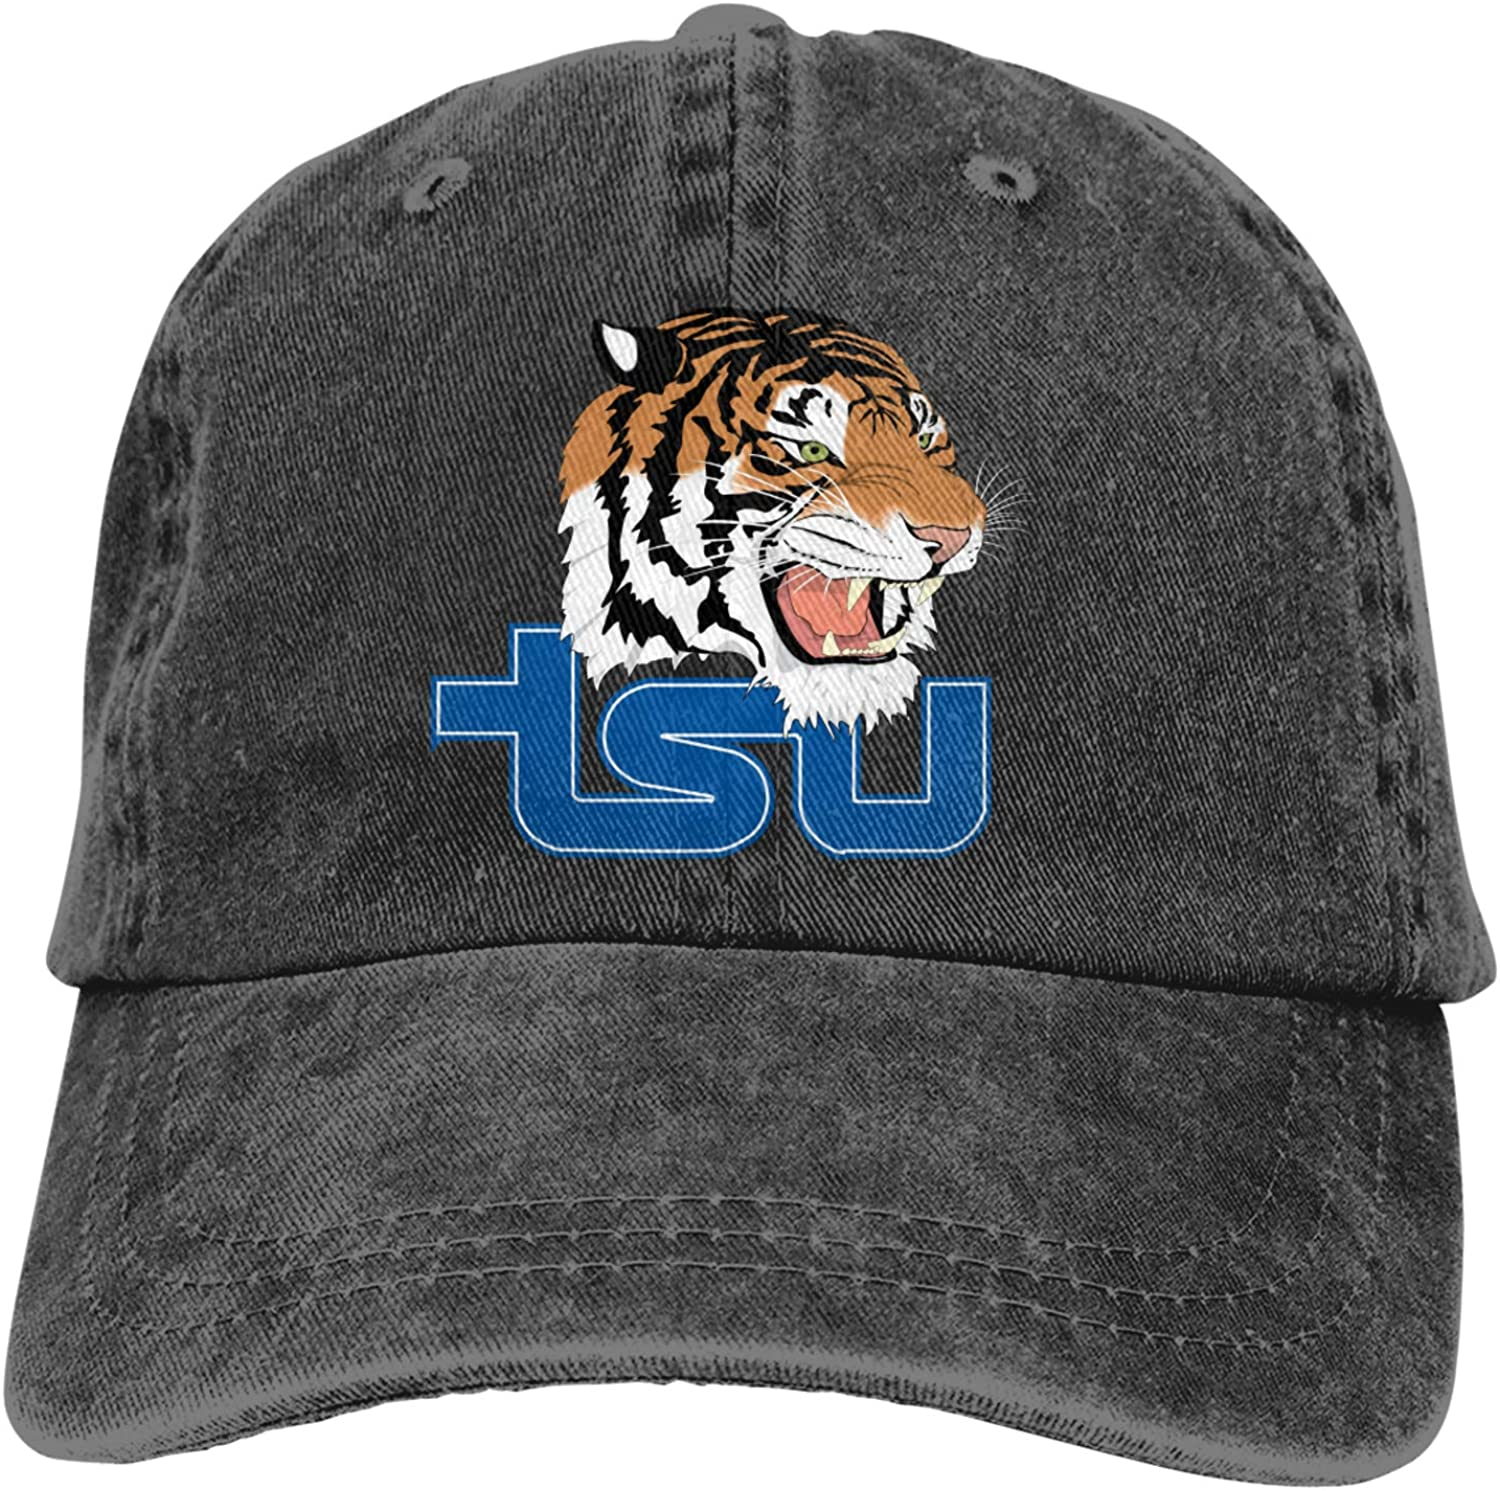 RUIHGK Tennessee State Tigers Denim Cap Adjustable Casquettes Baseball Cowboy Hat